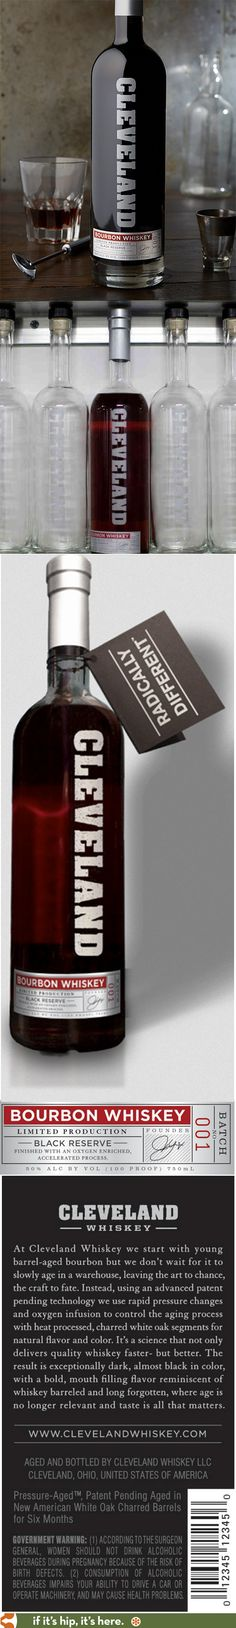 Cleveland Bourbon Whiskey with bottle design by CGNapa